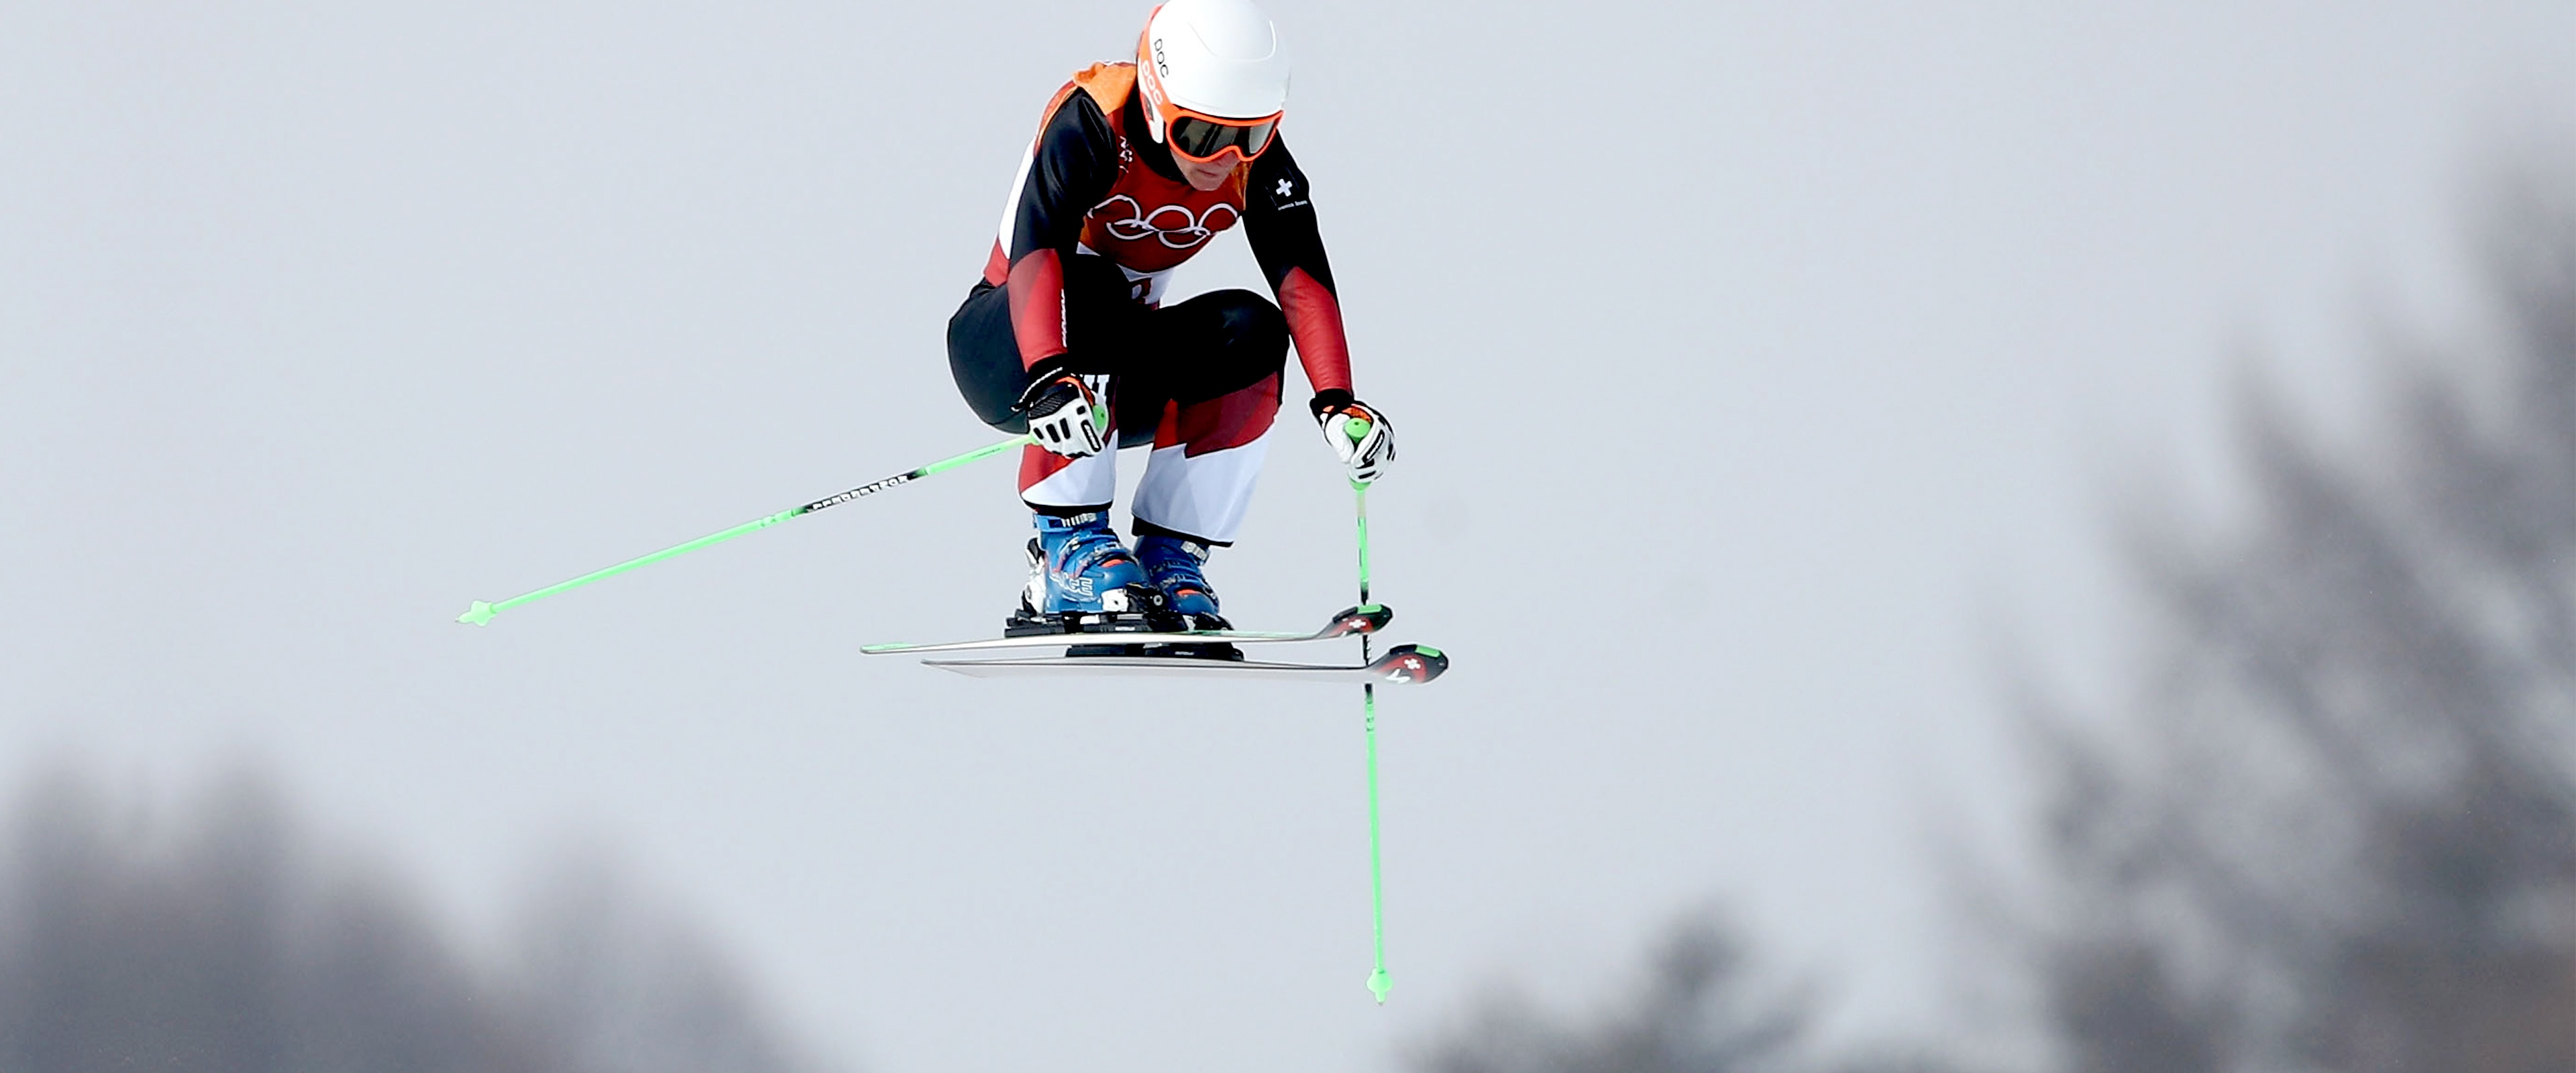 2020 Winter Olympics Skiing.2020 Vision Homegrown Heroes Olympic News